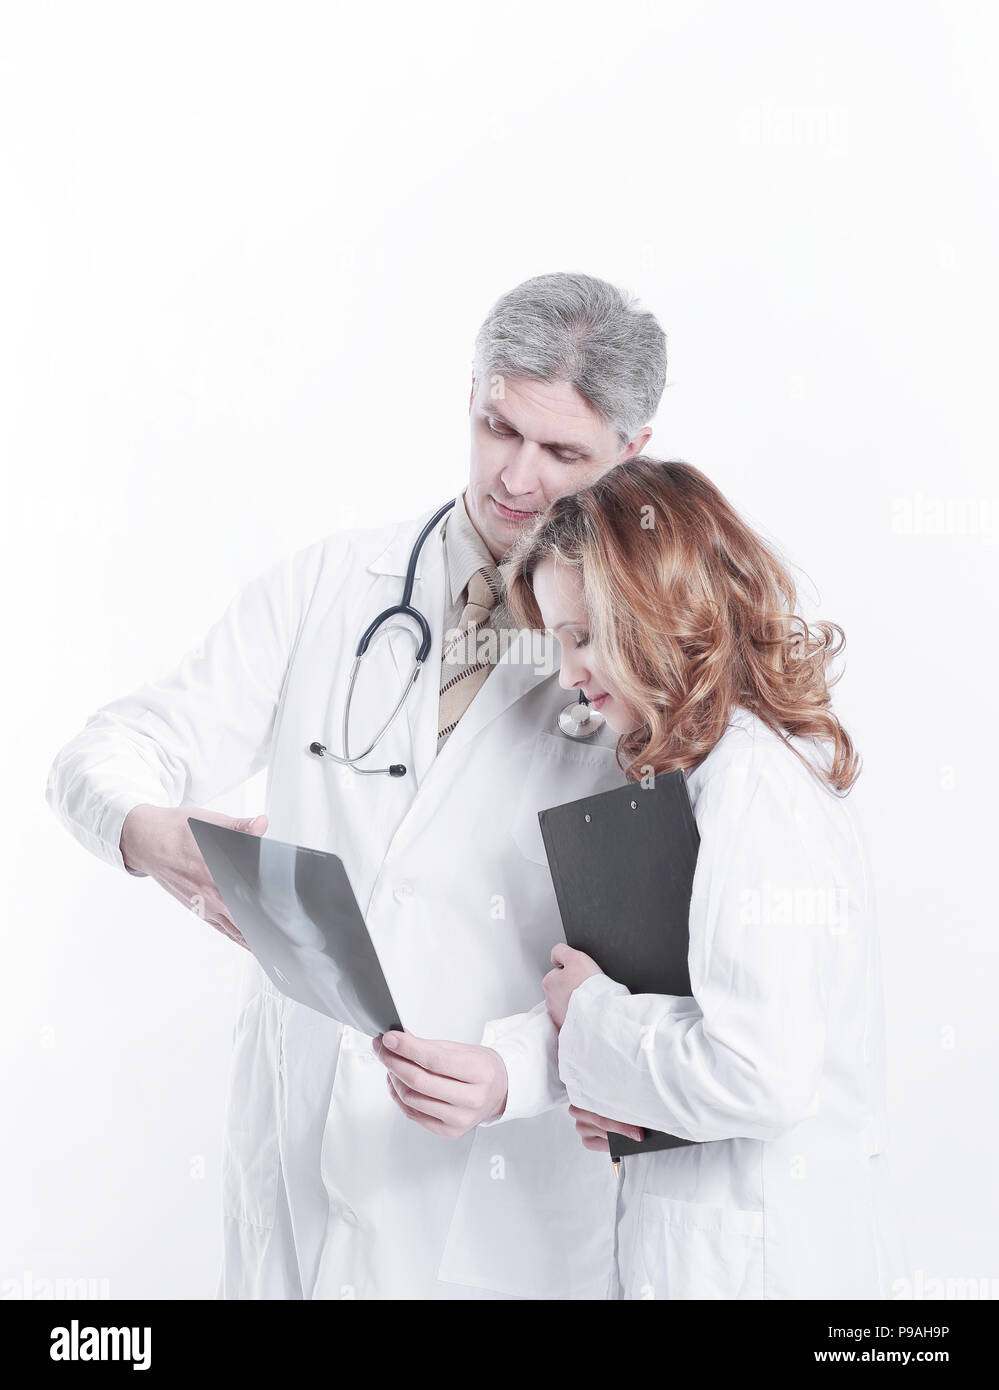 Professional medical team with doctors and surgeon examining patient's x-ray image Stock Photo